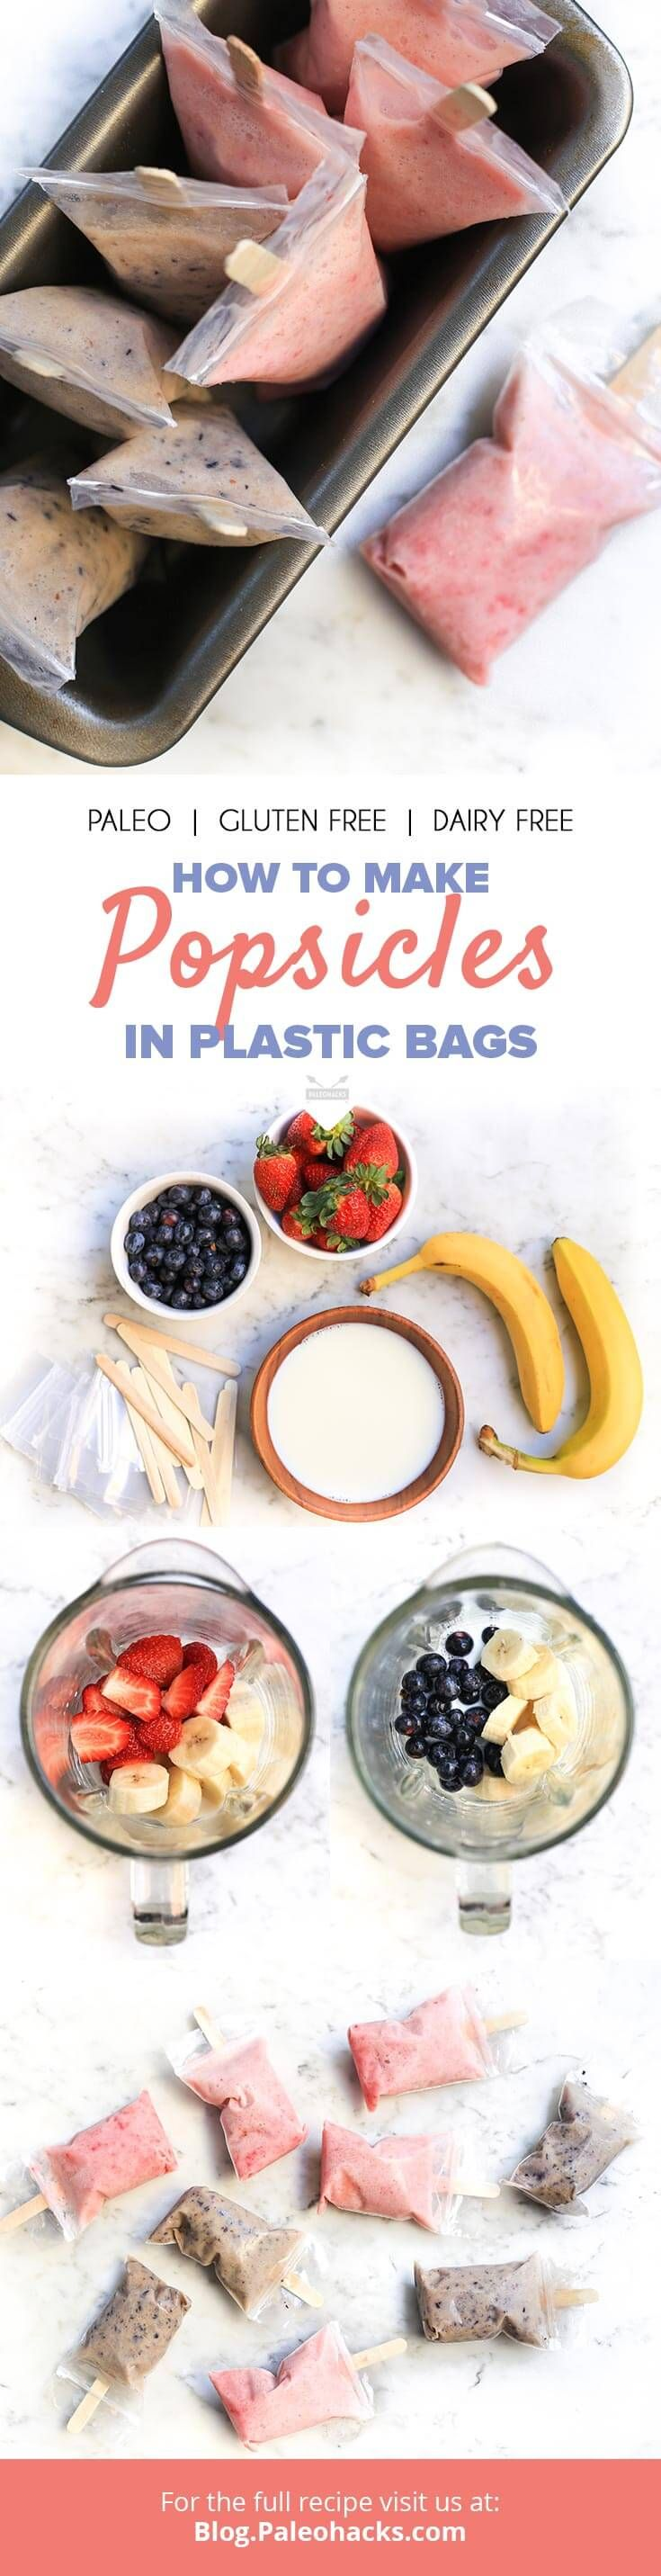 If you love popsicles but don't happen to own a popsicle mold,  don't worry. With these practical popsicles in plastic bags, you can  easily make your own sans mold! Get the recipe here: http://paleo.co/popsiclesinbags